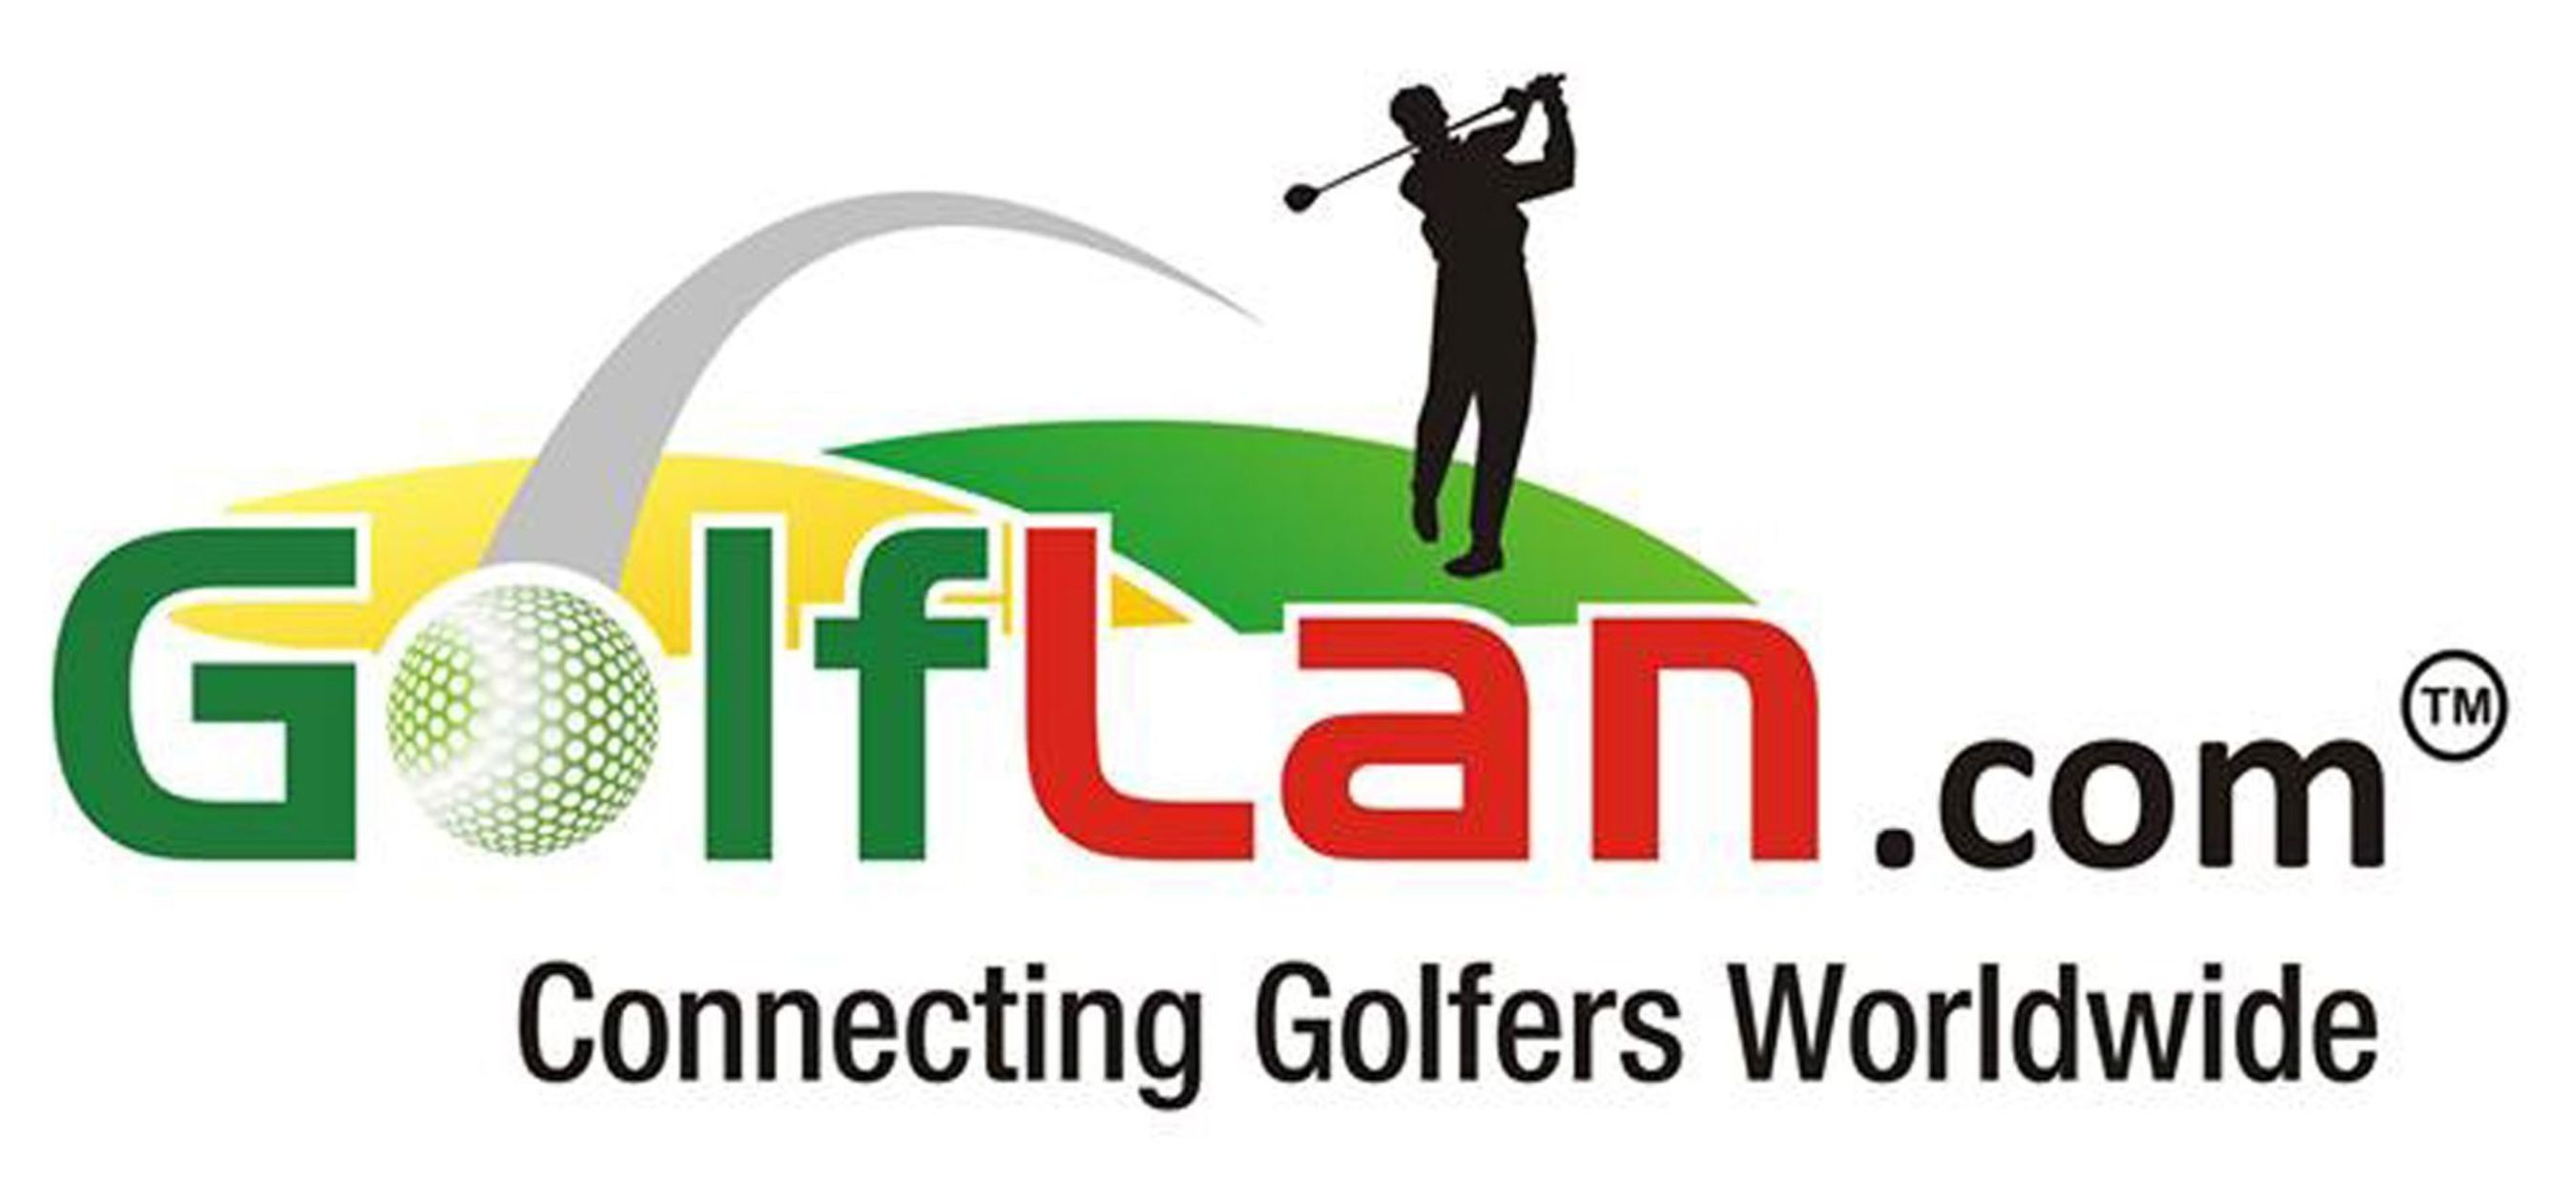 Global Golf Marketplace - GolfLAN.com Raises Pre-Series A Funding Led by YourNest